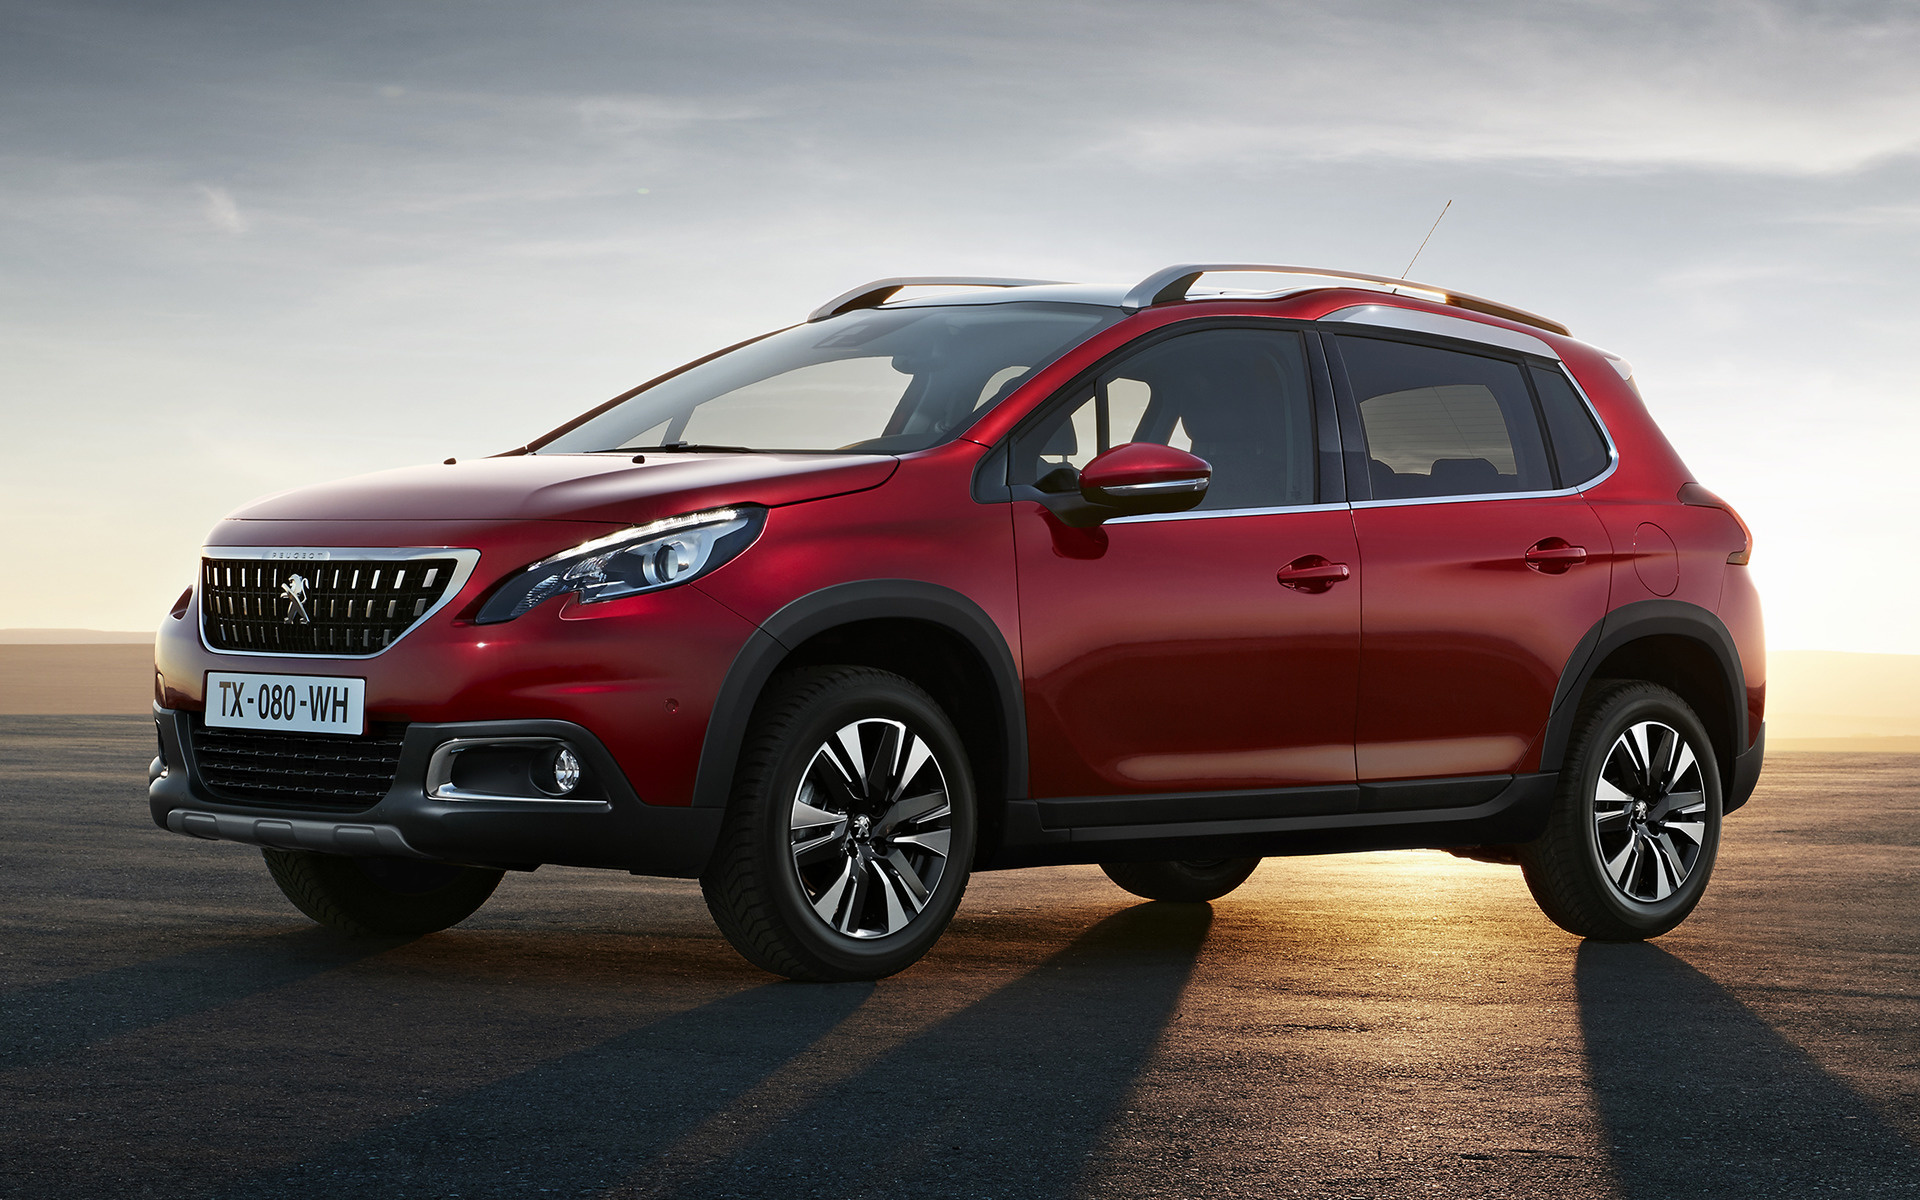 Suv Wallpapers Hd Peugeot 2008 2016 Wallpapers And Hd Images Car Pixel